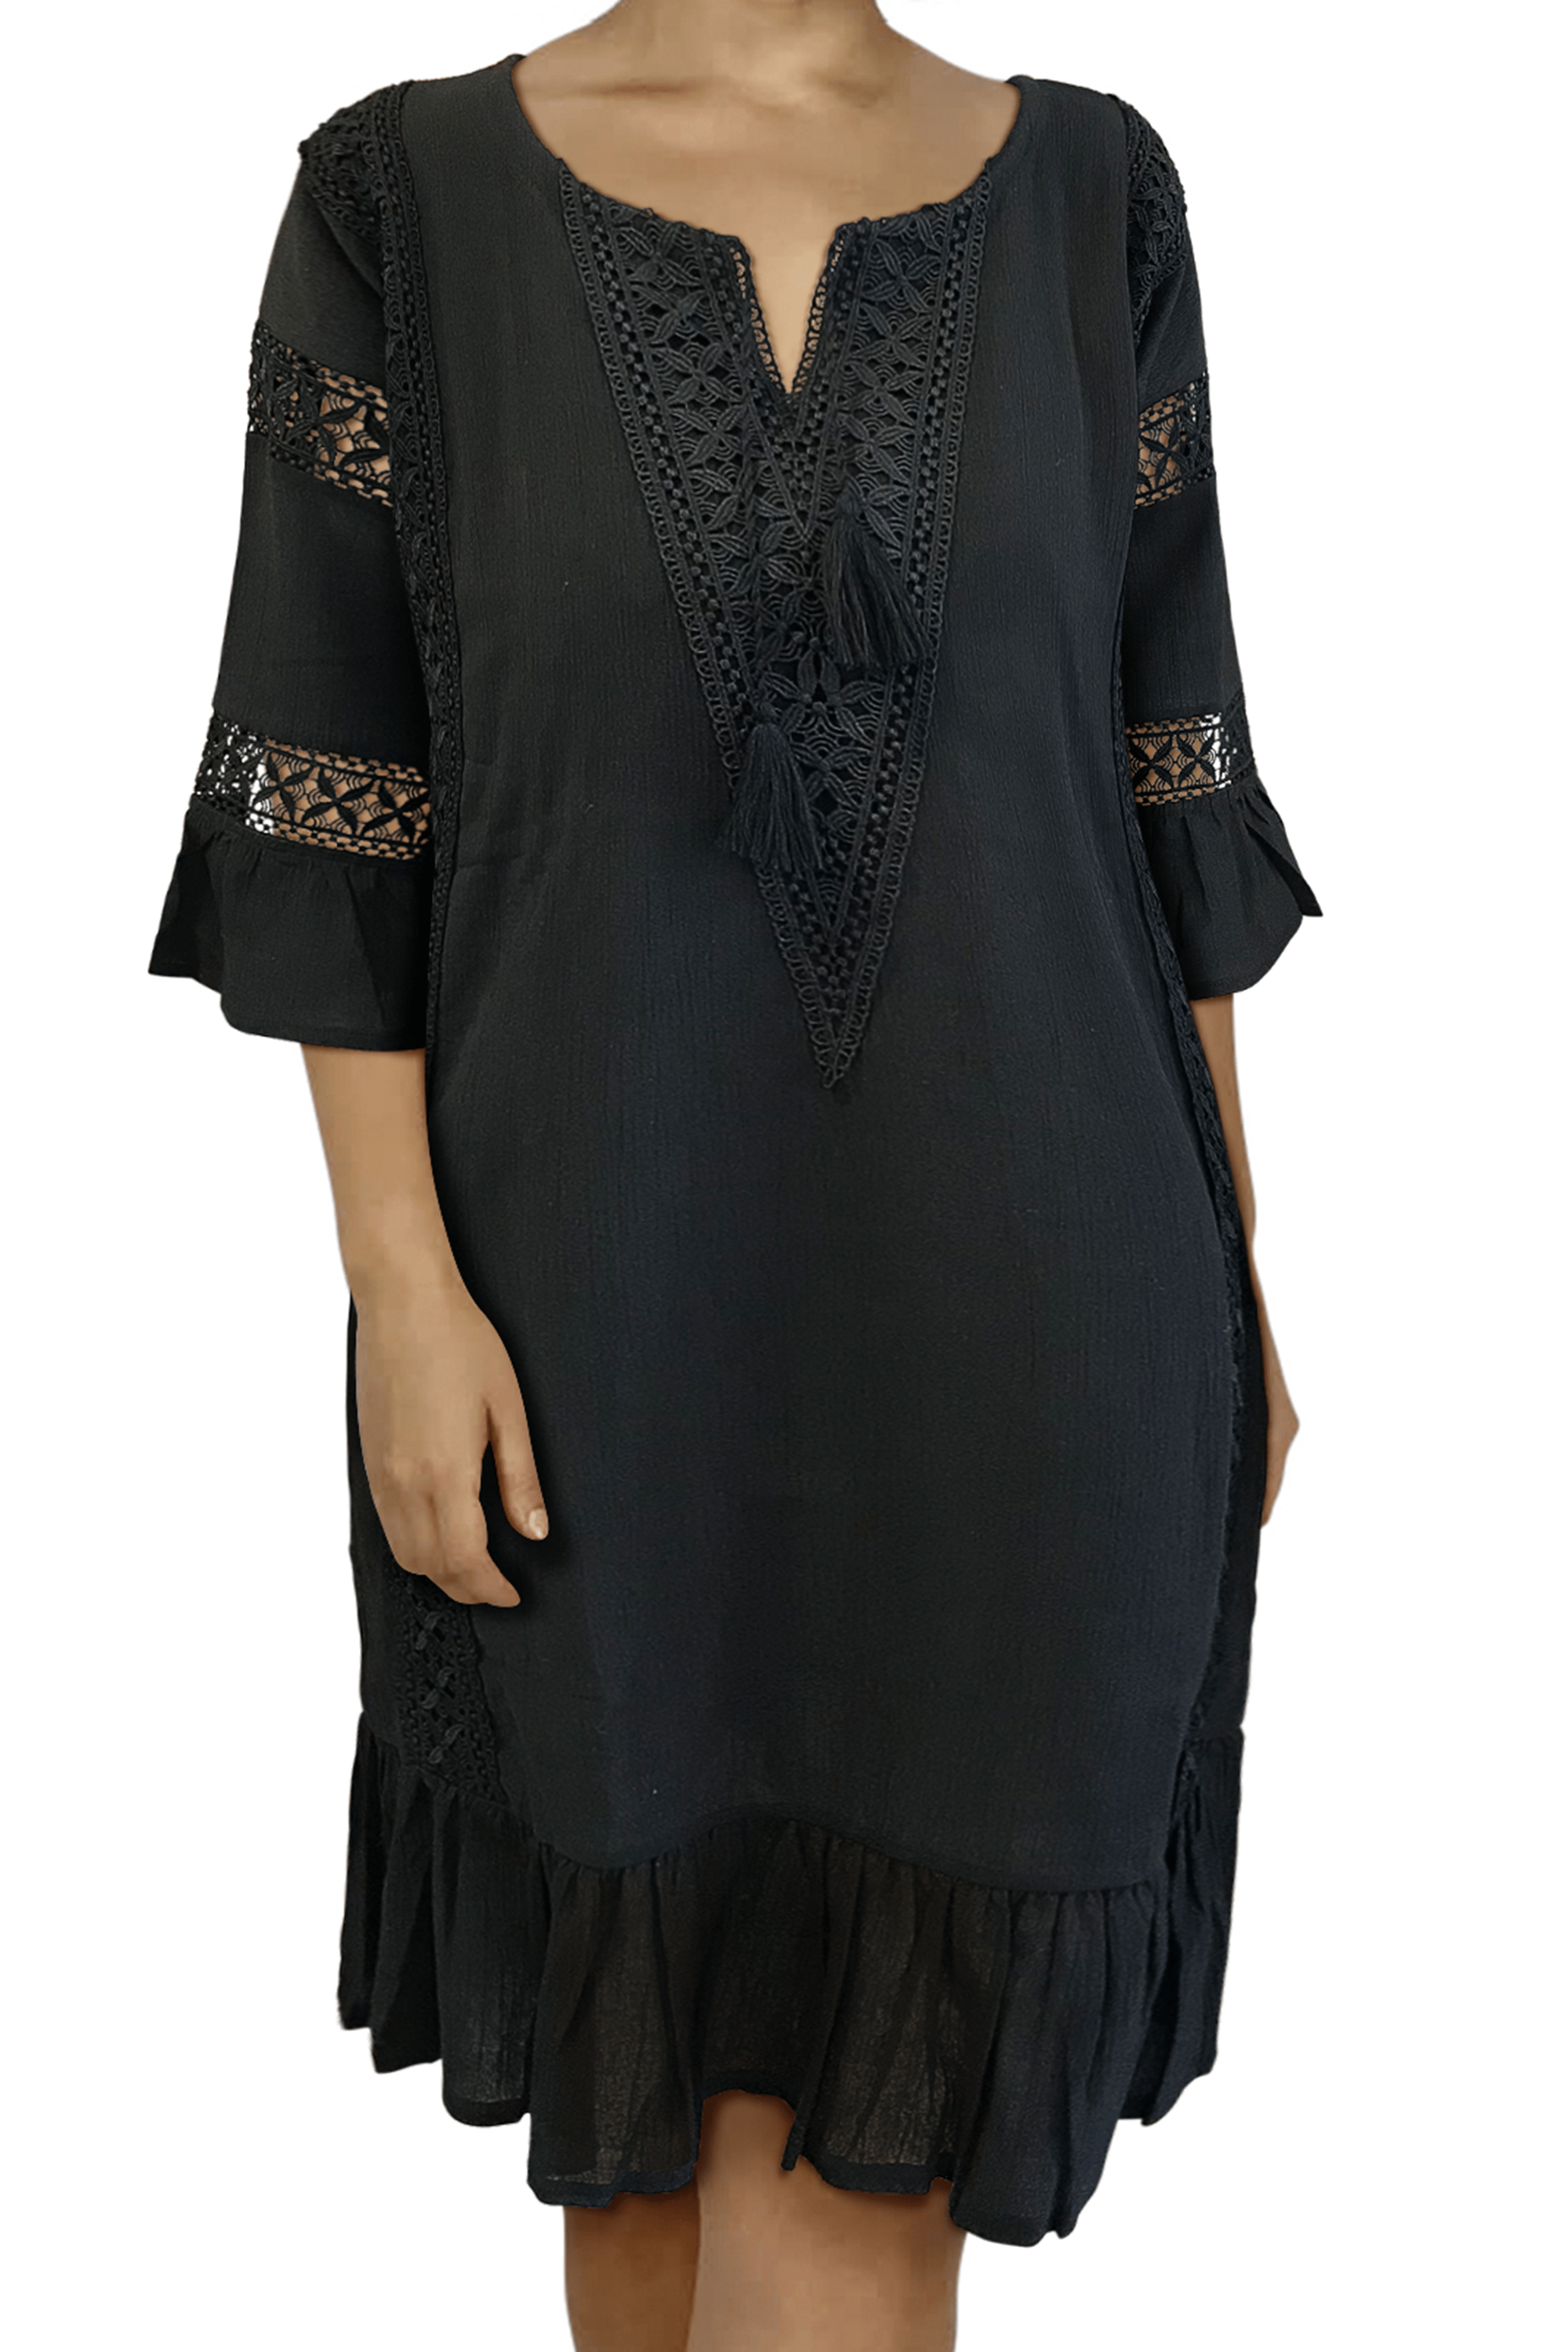 Ginger Threads Collections dress Black Boho Dress with lace accents